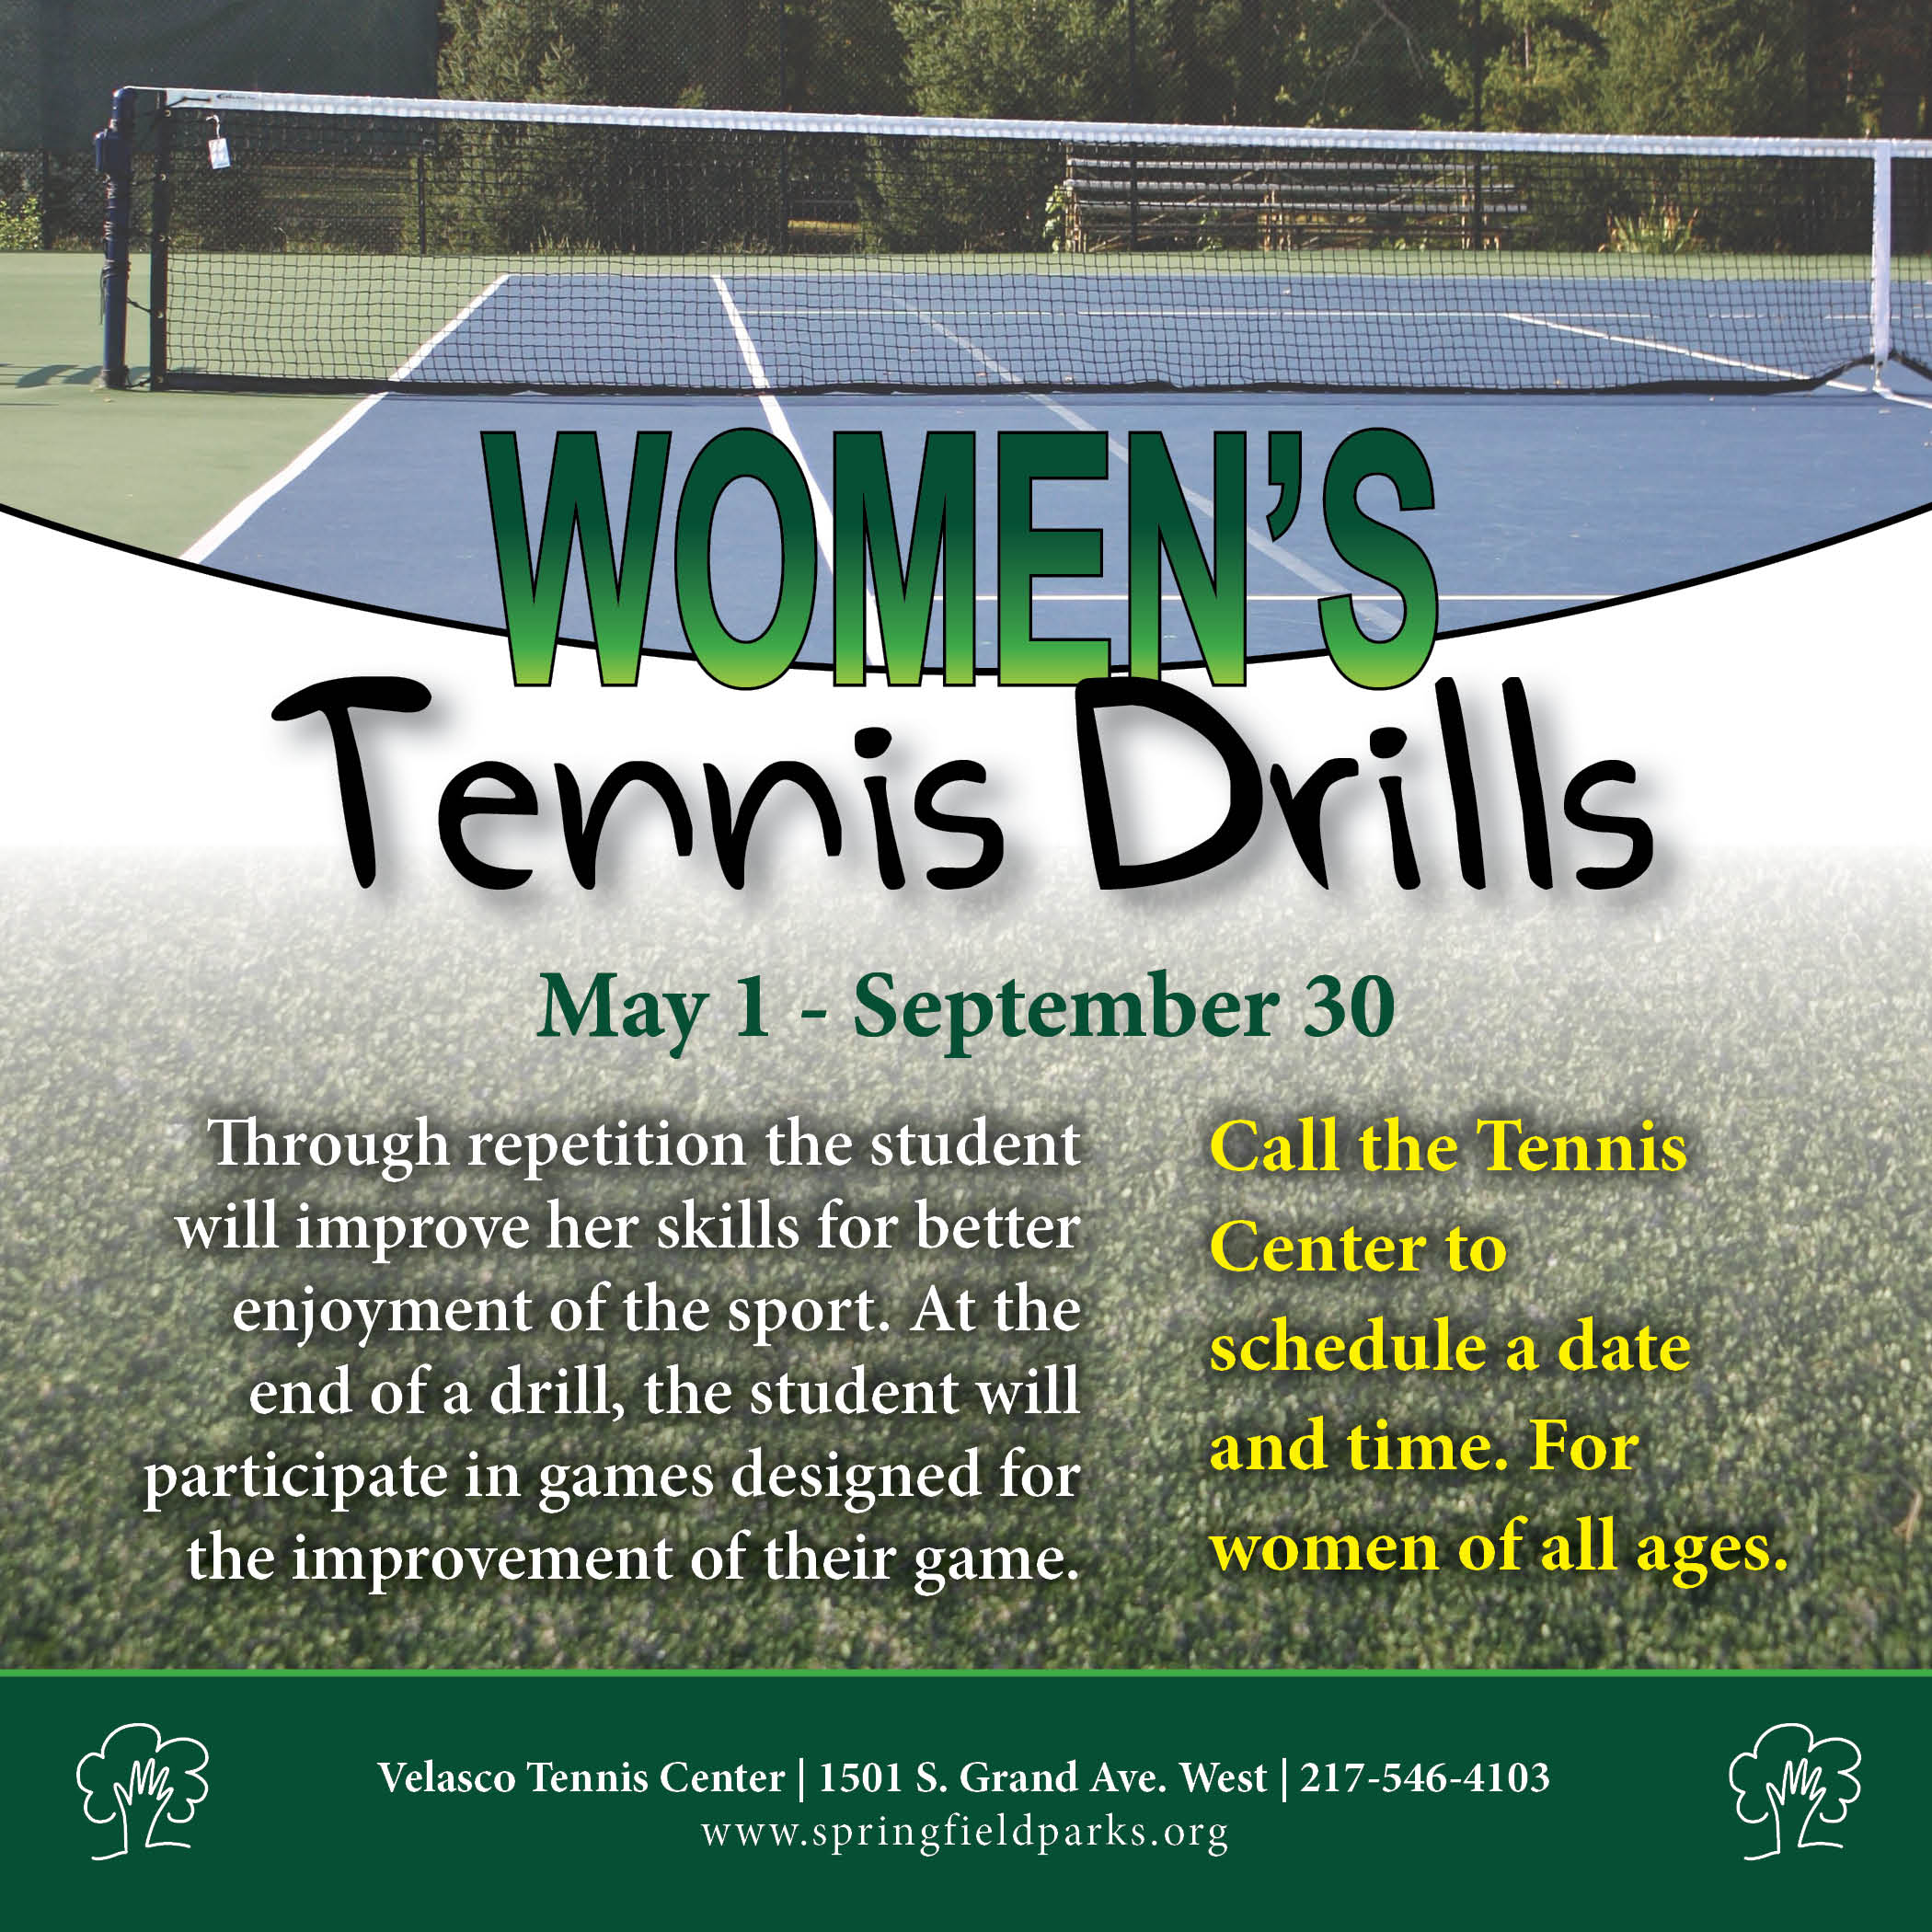 The Student Will Participate In Games Designed For The Improvement Of  Their Game To Schedule A Day And Time Call Velasco Tennis Center At  2175464103